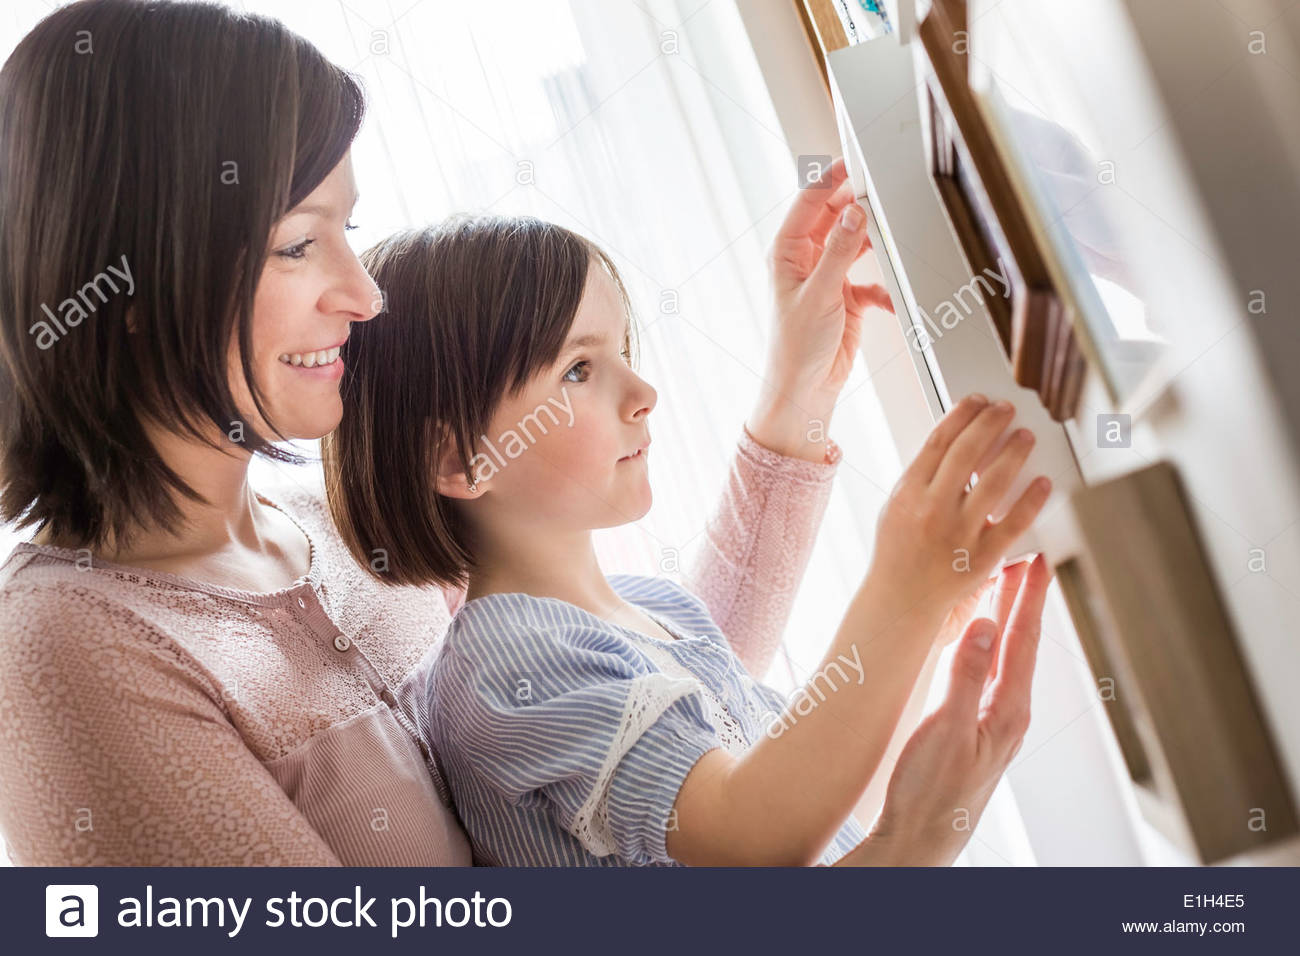 Mother and daughter adjusting picture - Stock Image